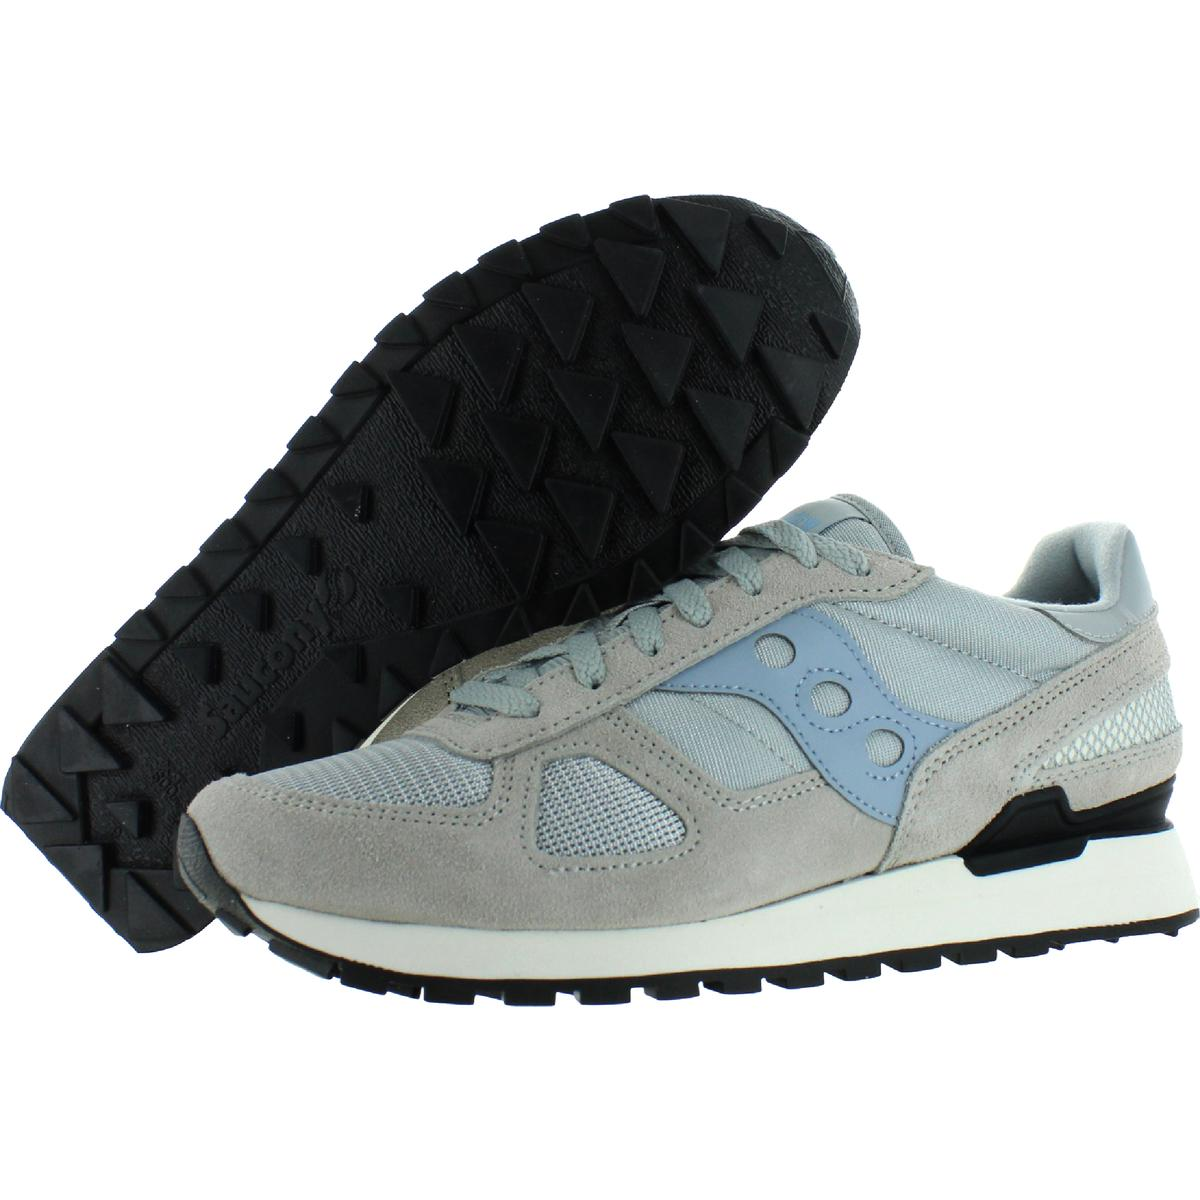 Saucony-Mens-Shadow-Original-Trainers-Suede-Comfort-Sneakers-Shoes-BHFO-0431 miniatuur 15